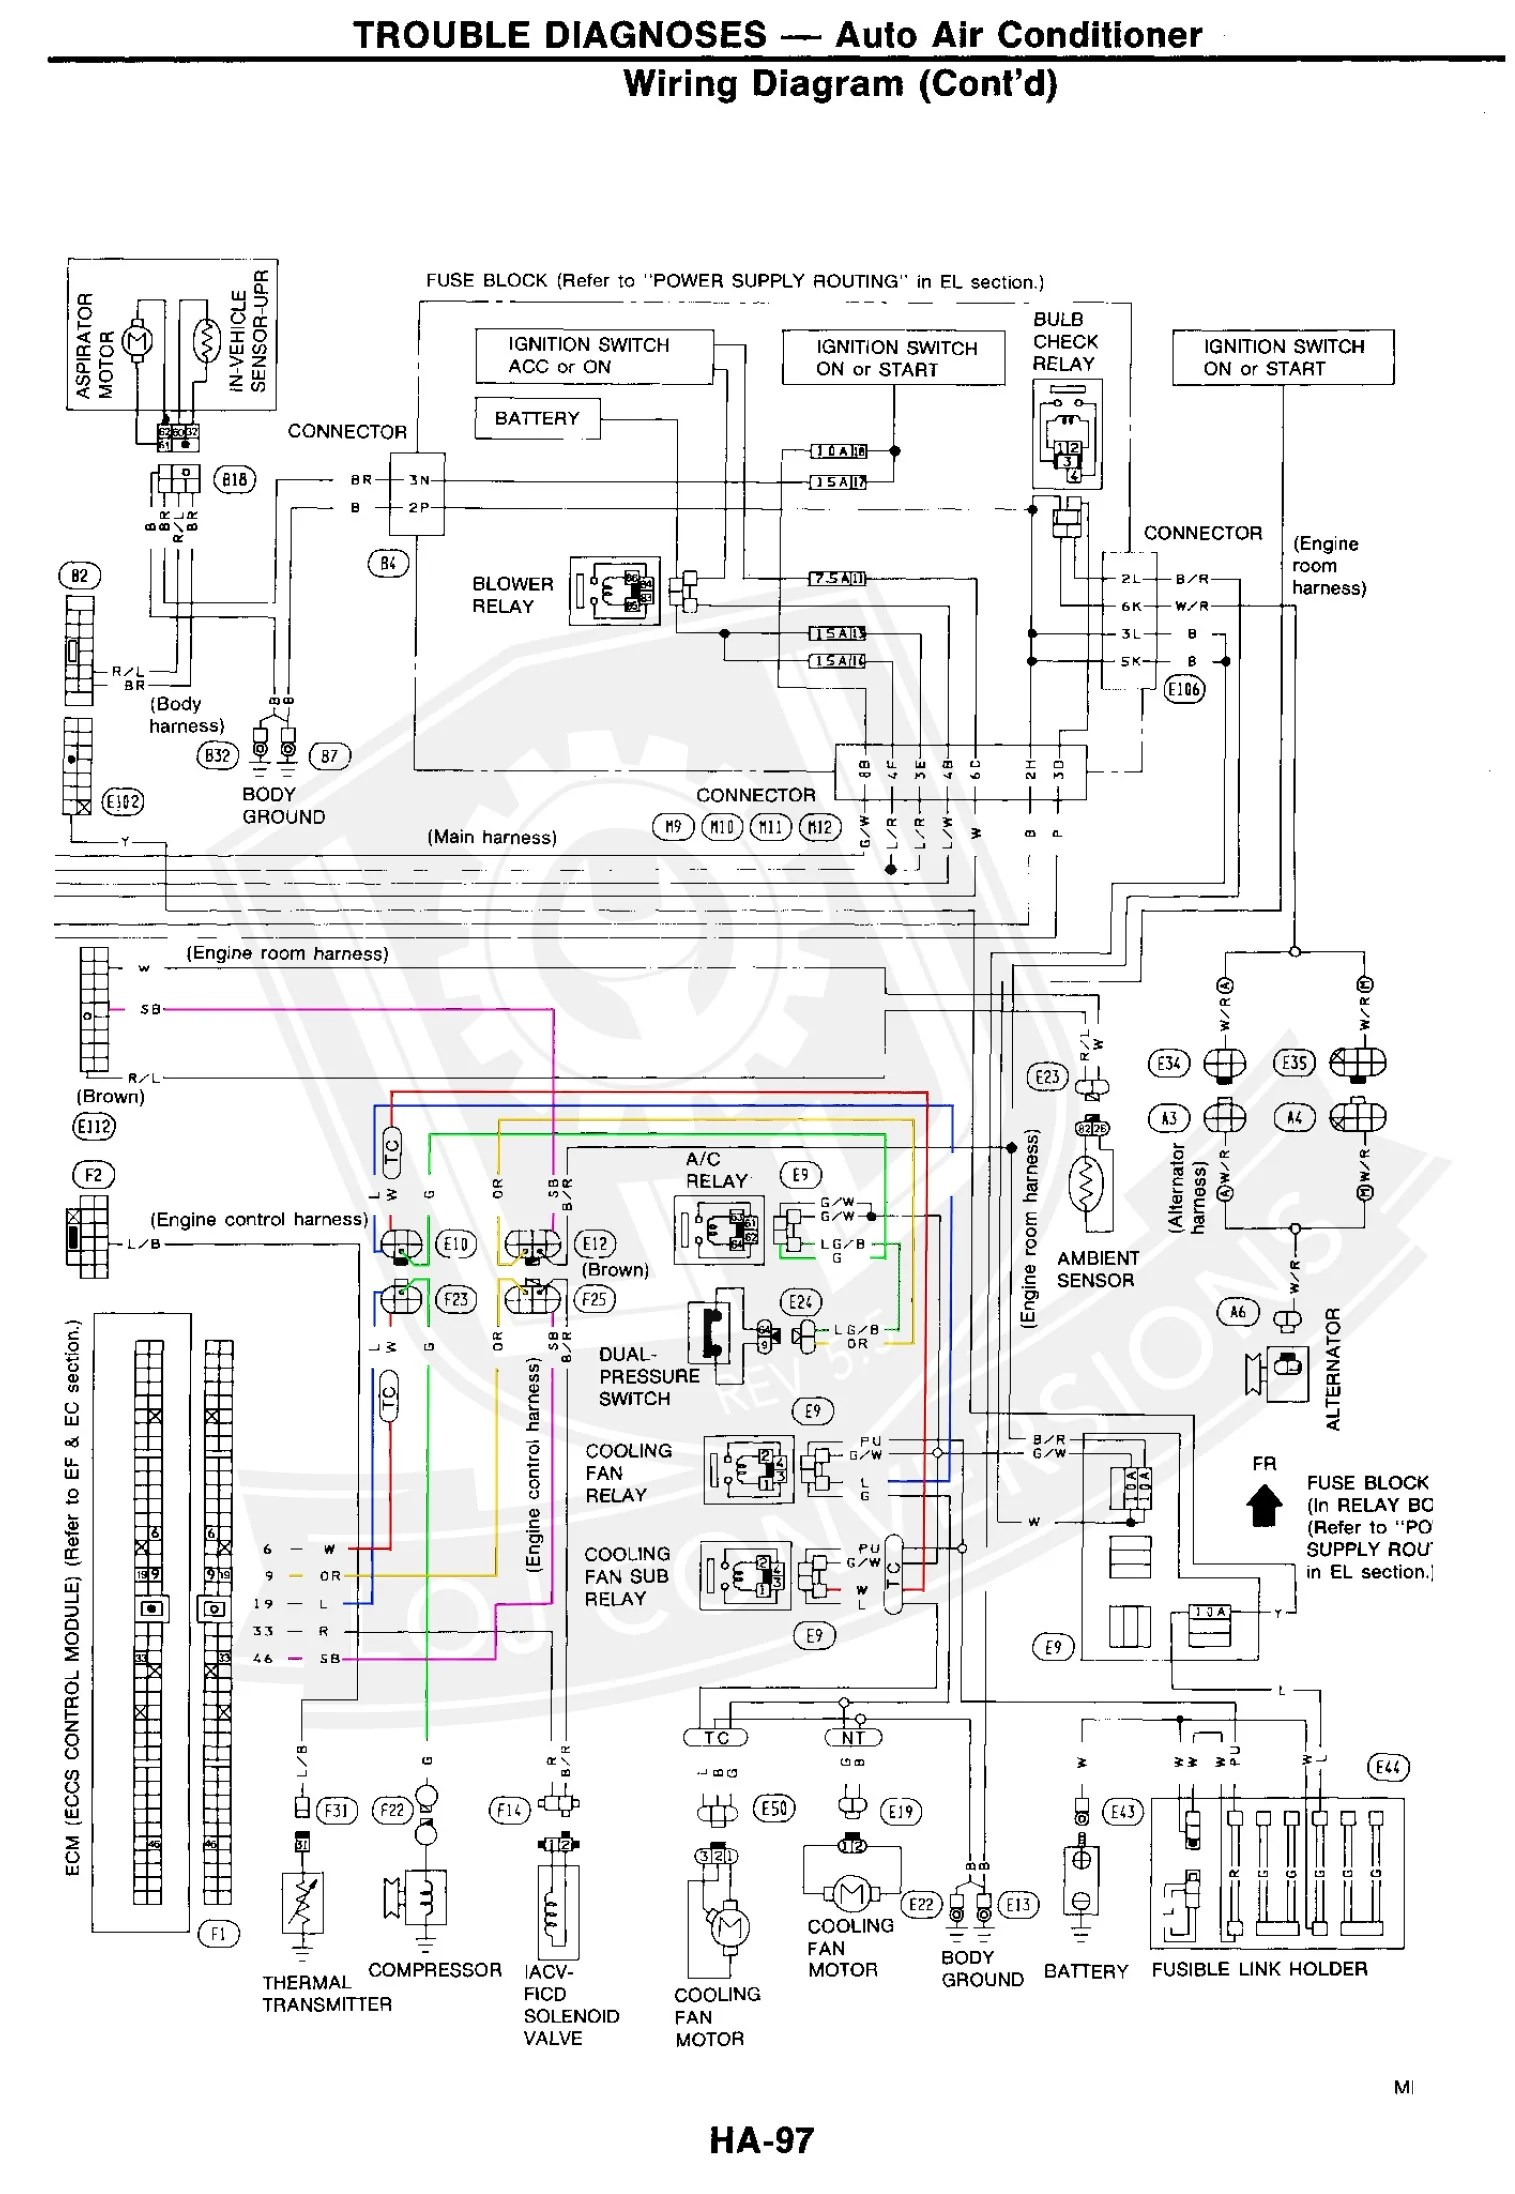 small resolution of 300zx wire diagram wiring diagrams konsult 1990 300zx harness layout